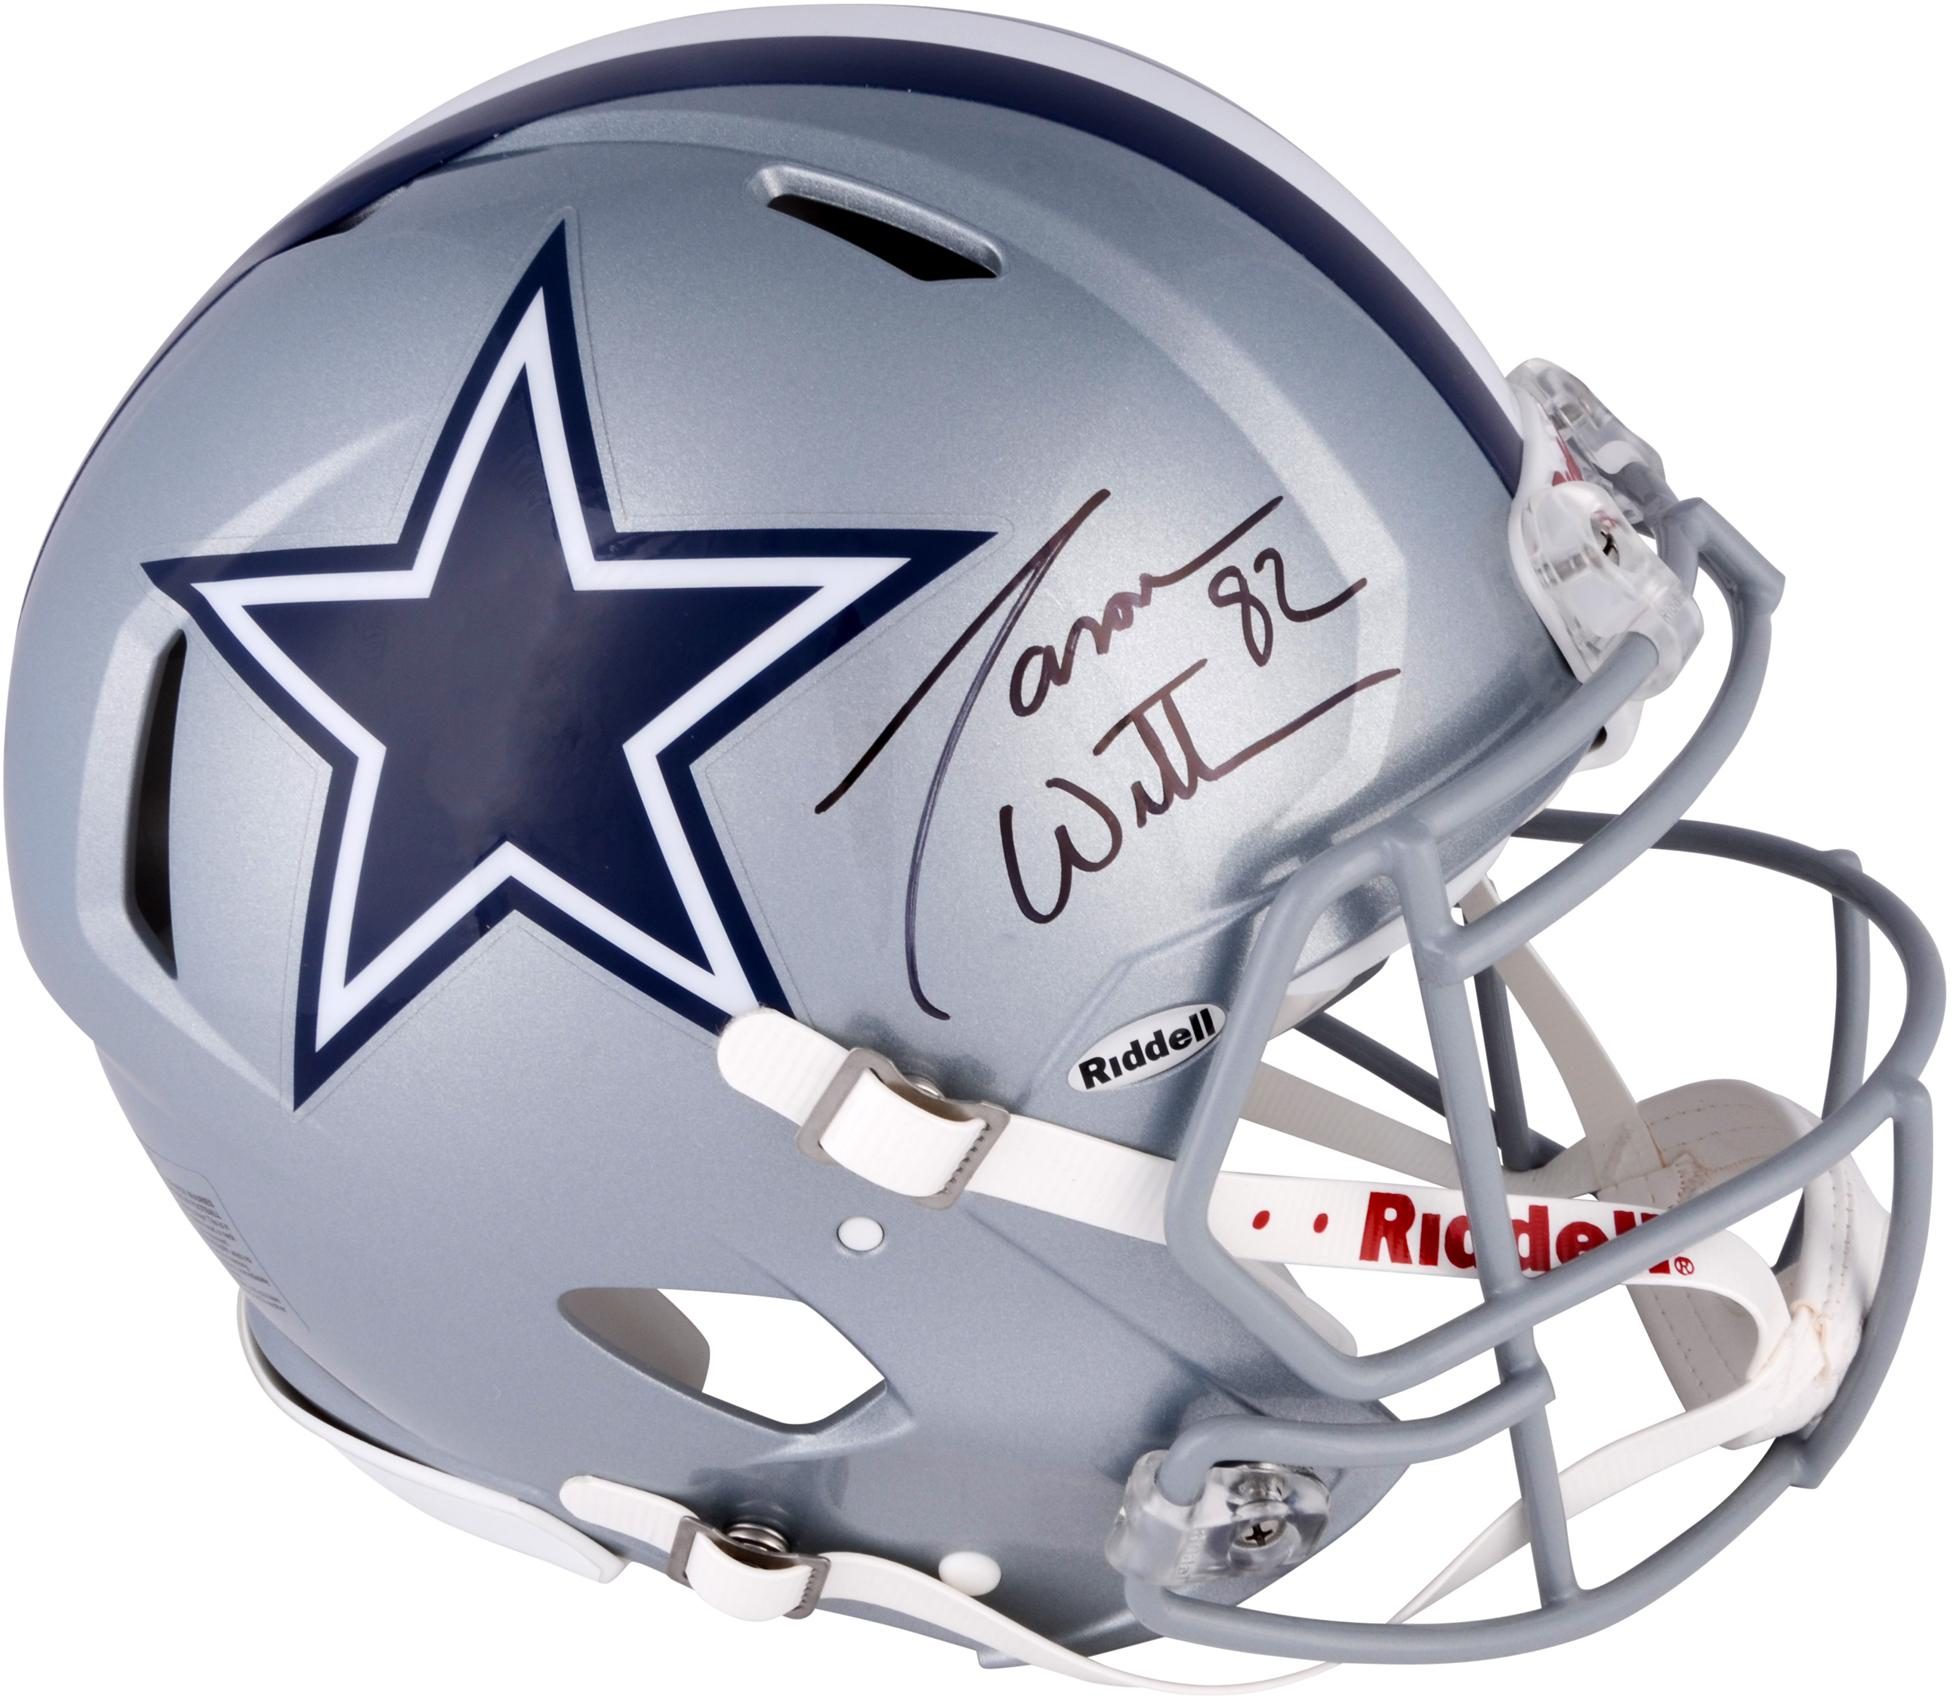 dallas cowboys chairs sale 1800 koken barber chair jason witten autographed riddell pro line